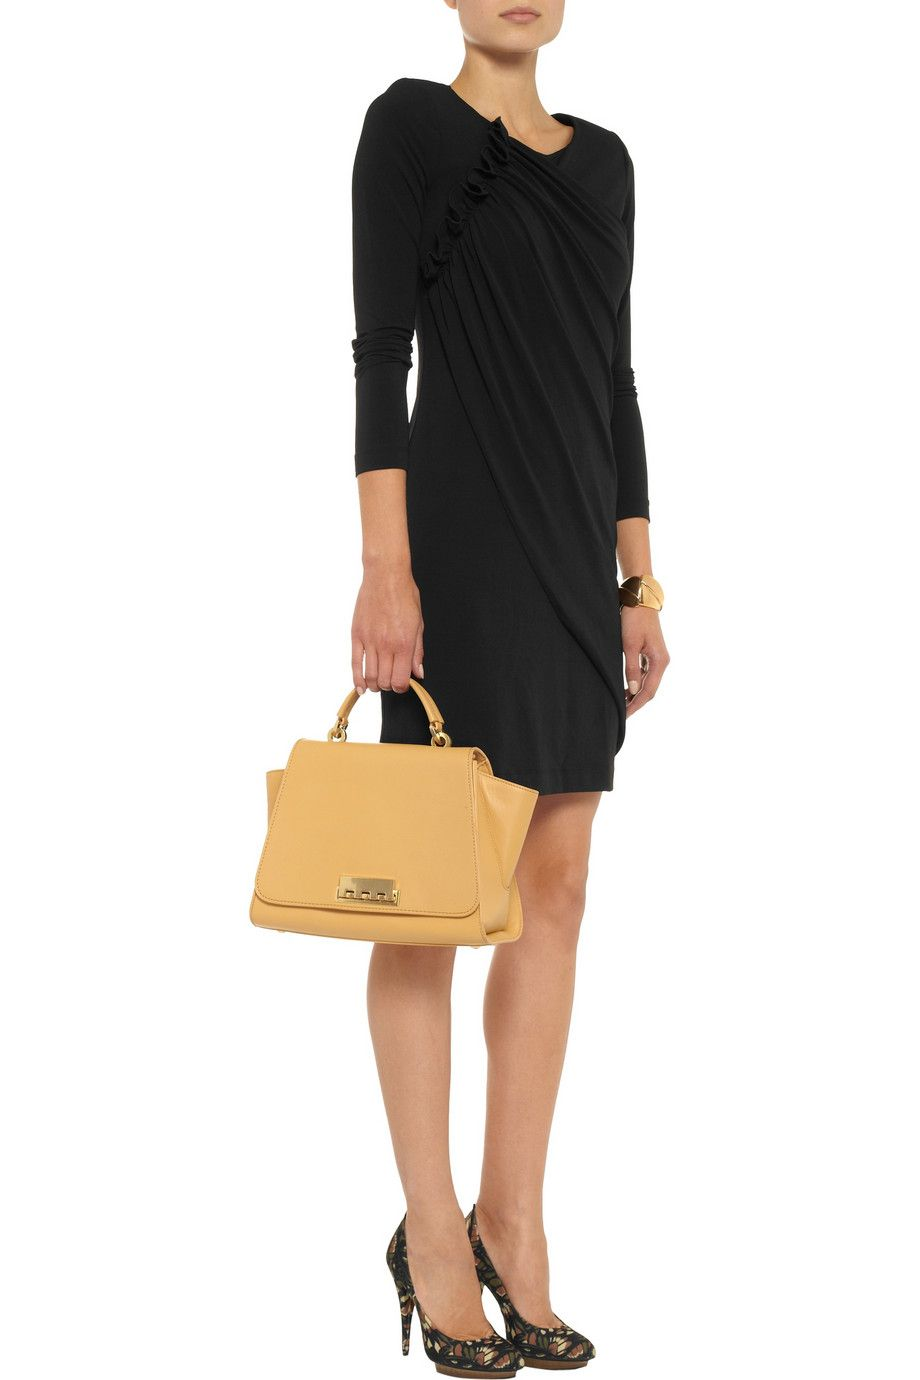 Love Moschino Draped stretch-crepe dress - 54% Off Now at THE OUTNET